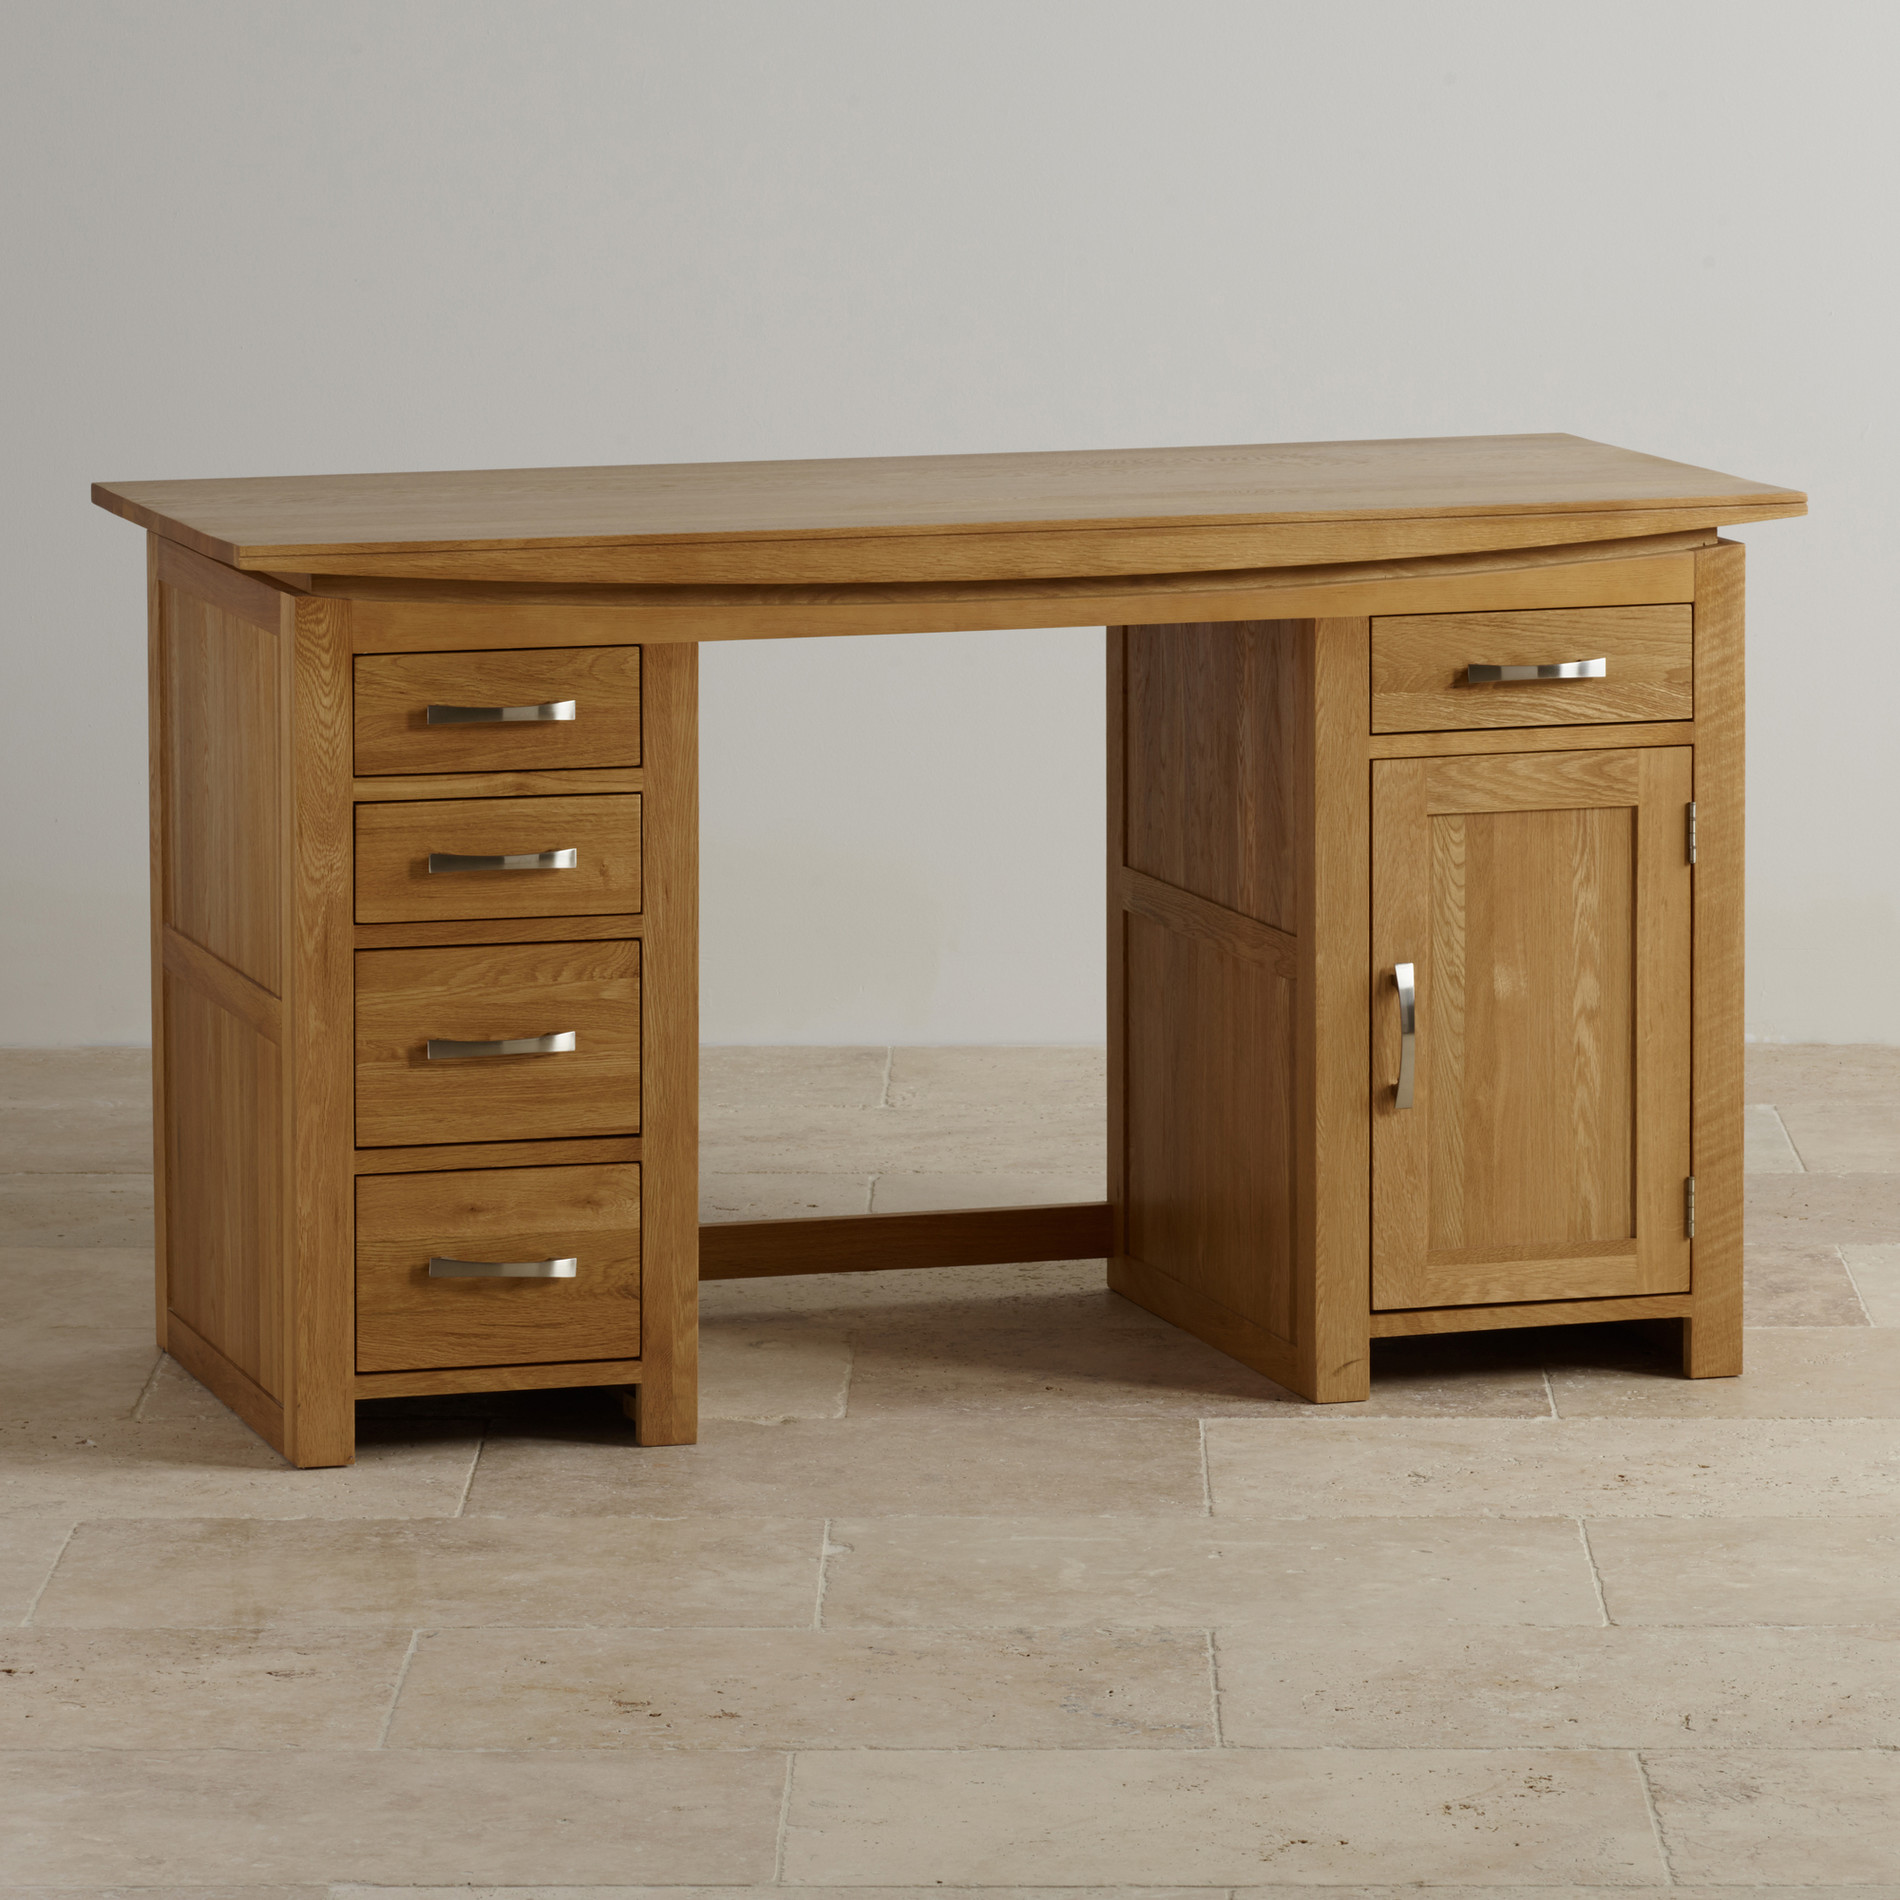 Tokyo natural solid oak computer desk by oak furniture land for Solid oak furniture